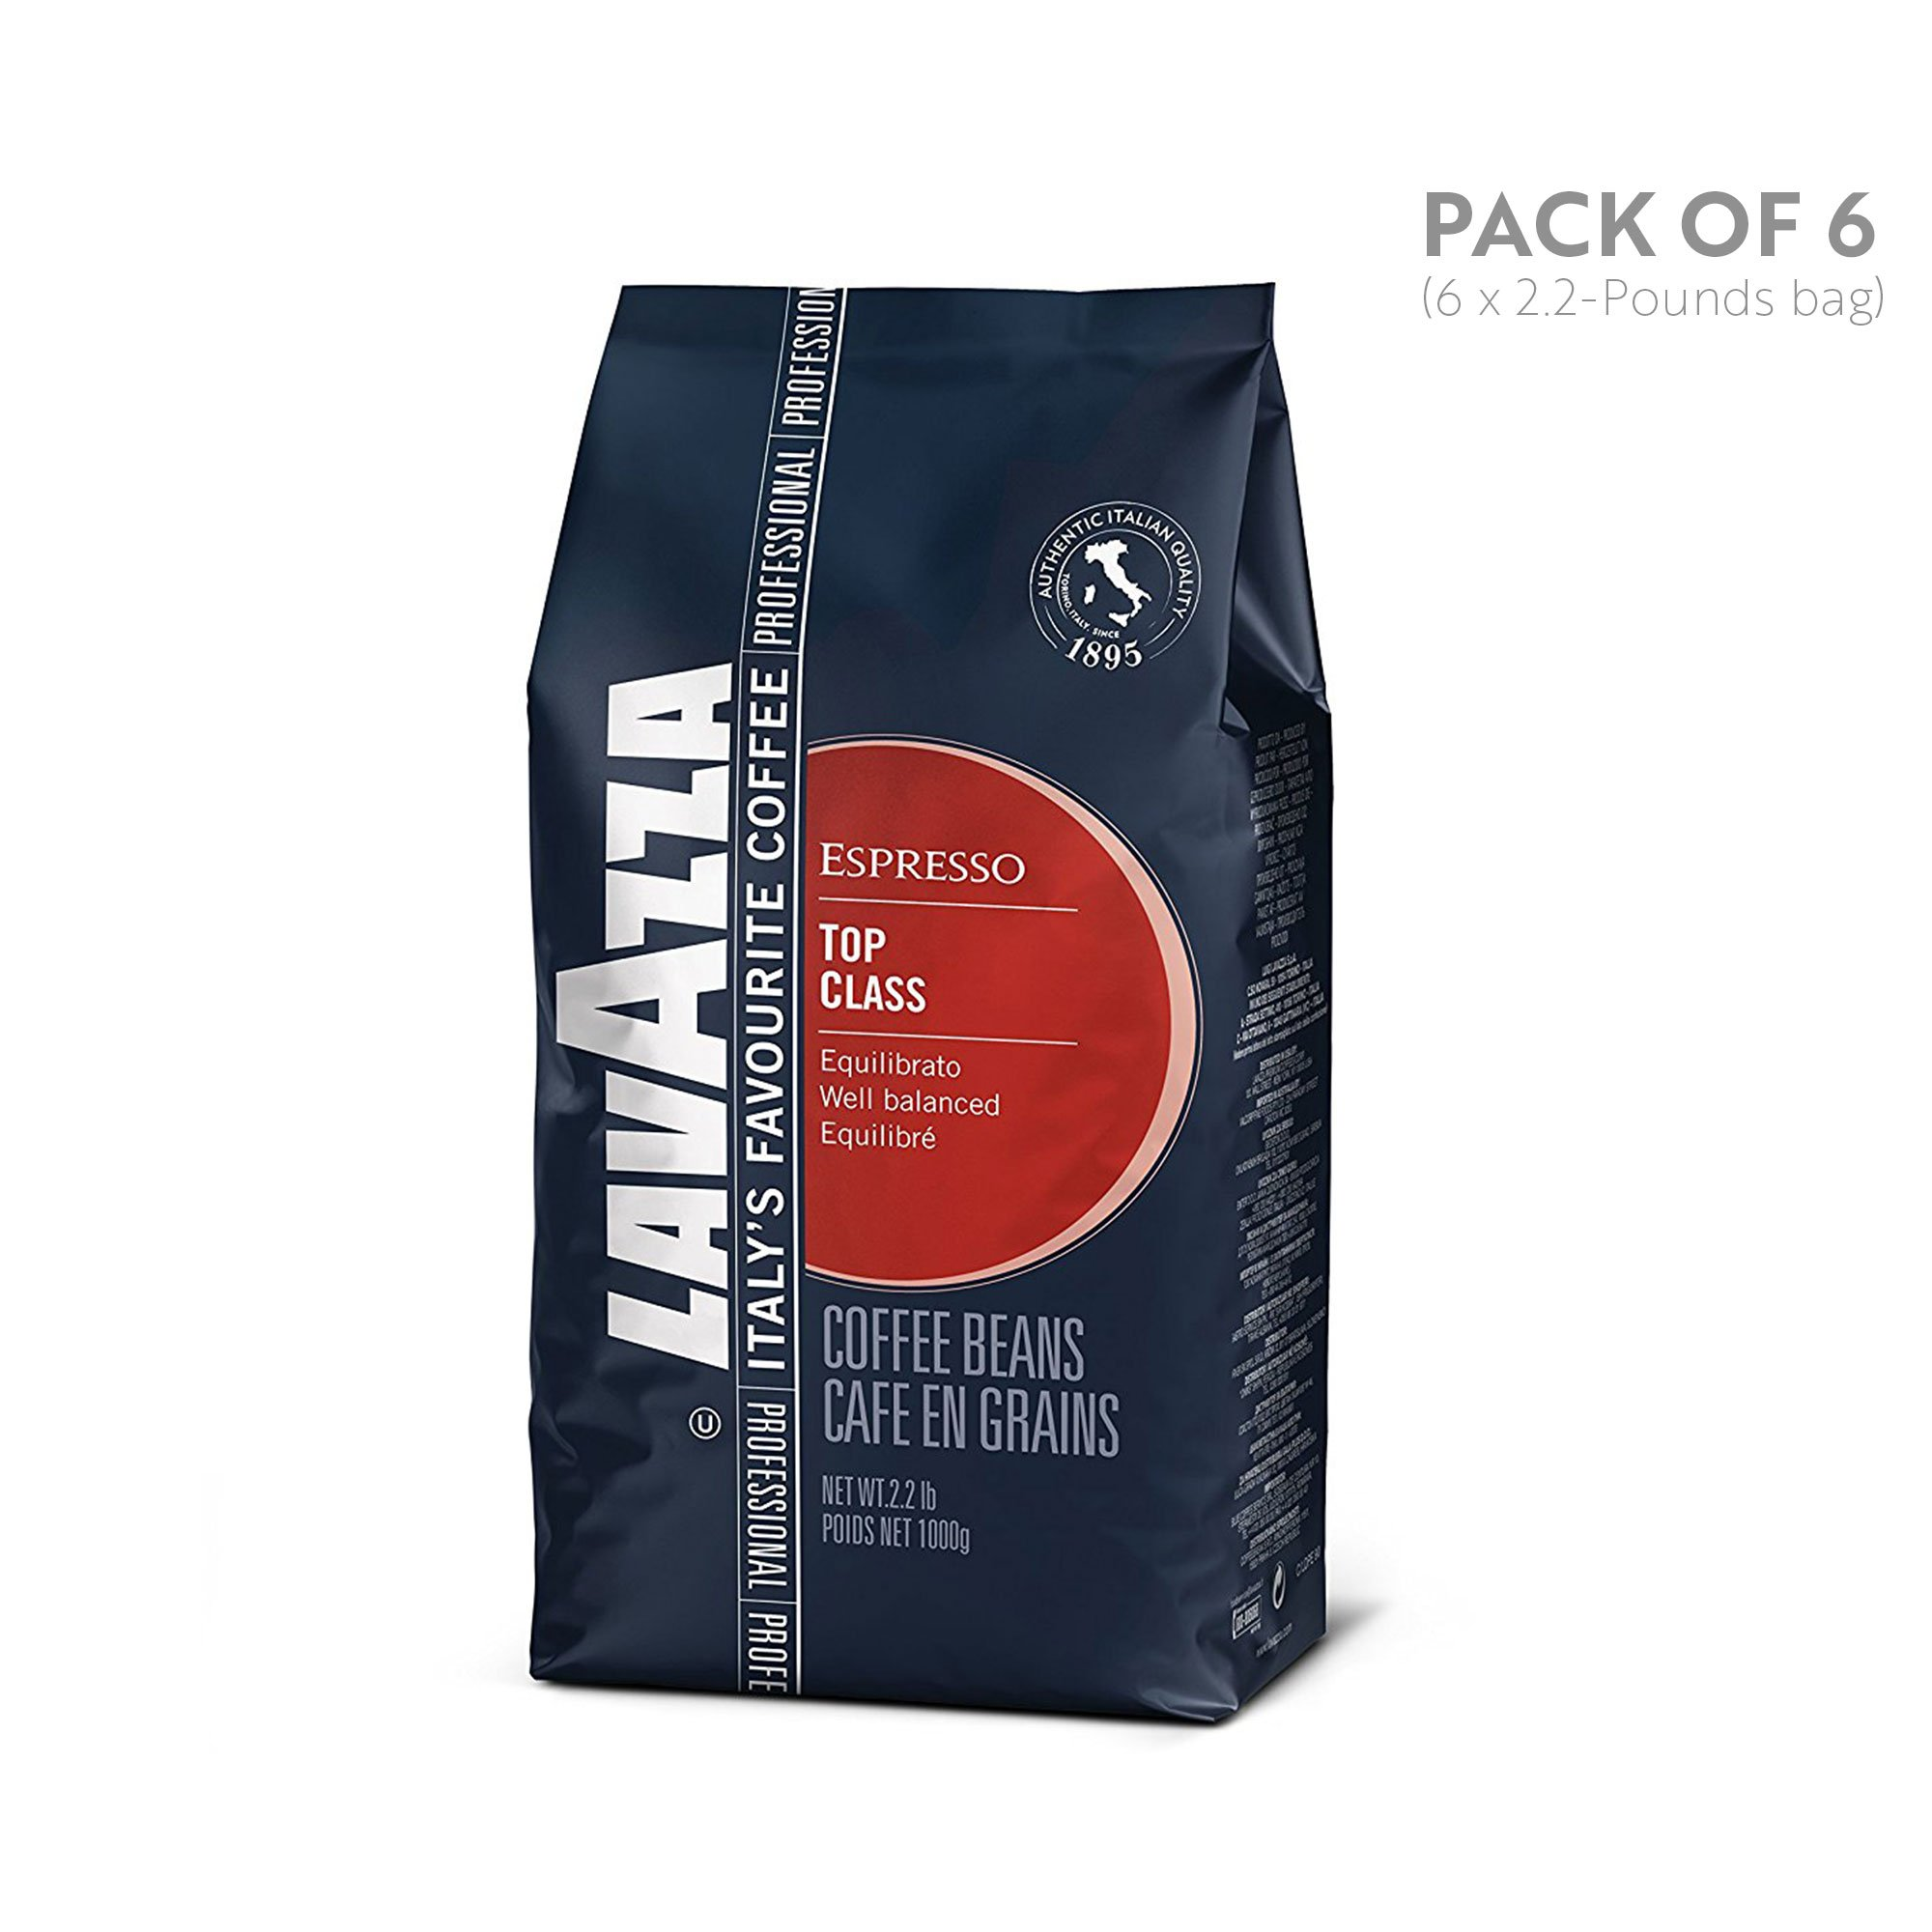 Lavazza Top Class Whole Bean Coffee Blend, Medium Espresso Roast, 2.2 Pound, 6 Count